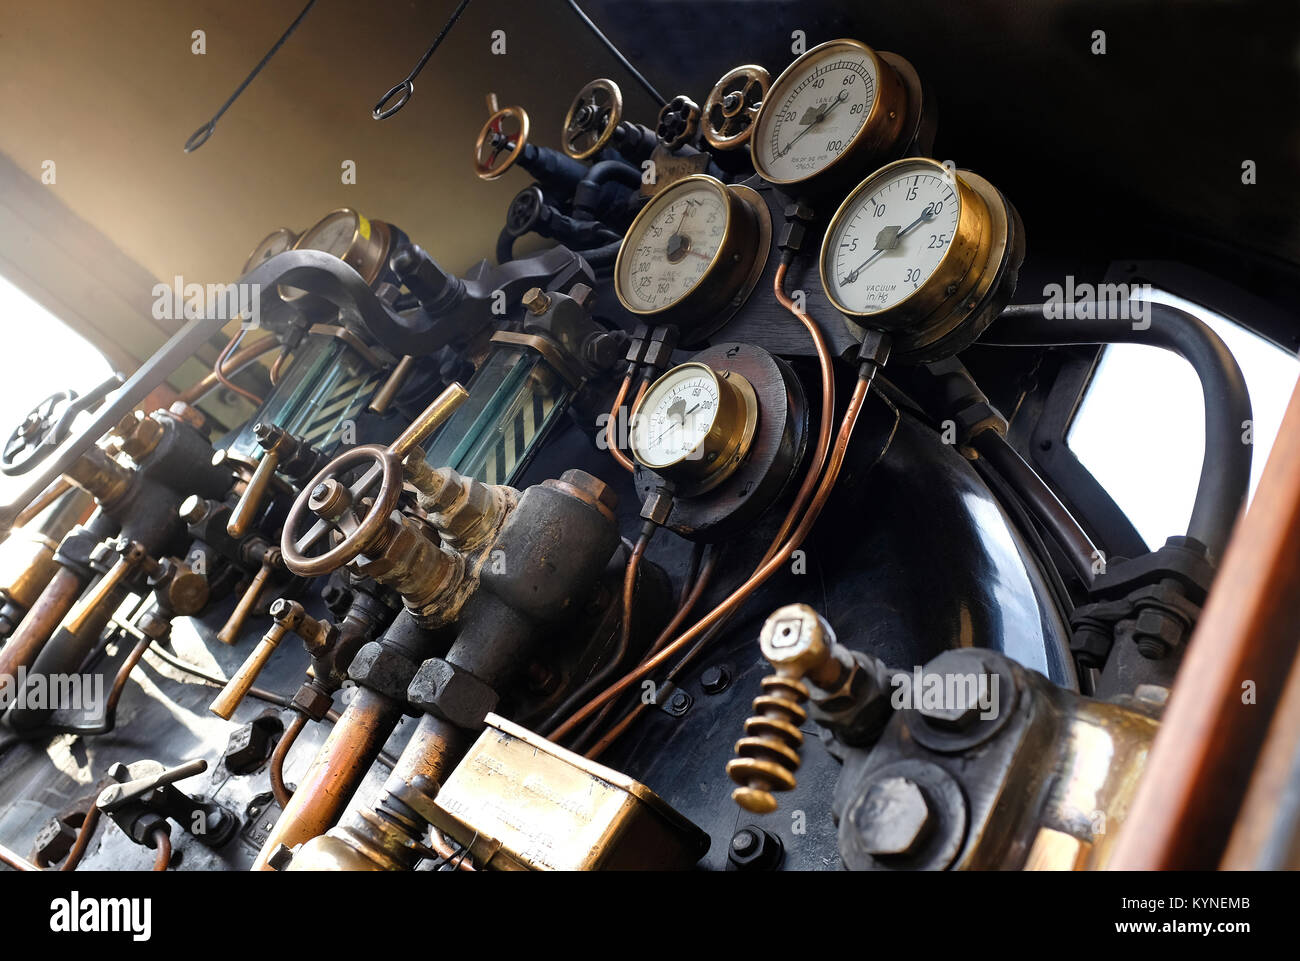 knobs, dials and levers on old steam train - Stock Image